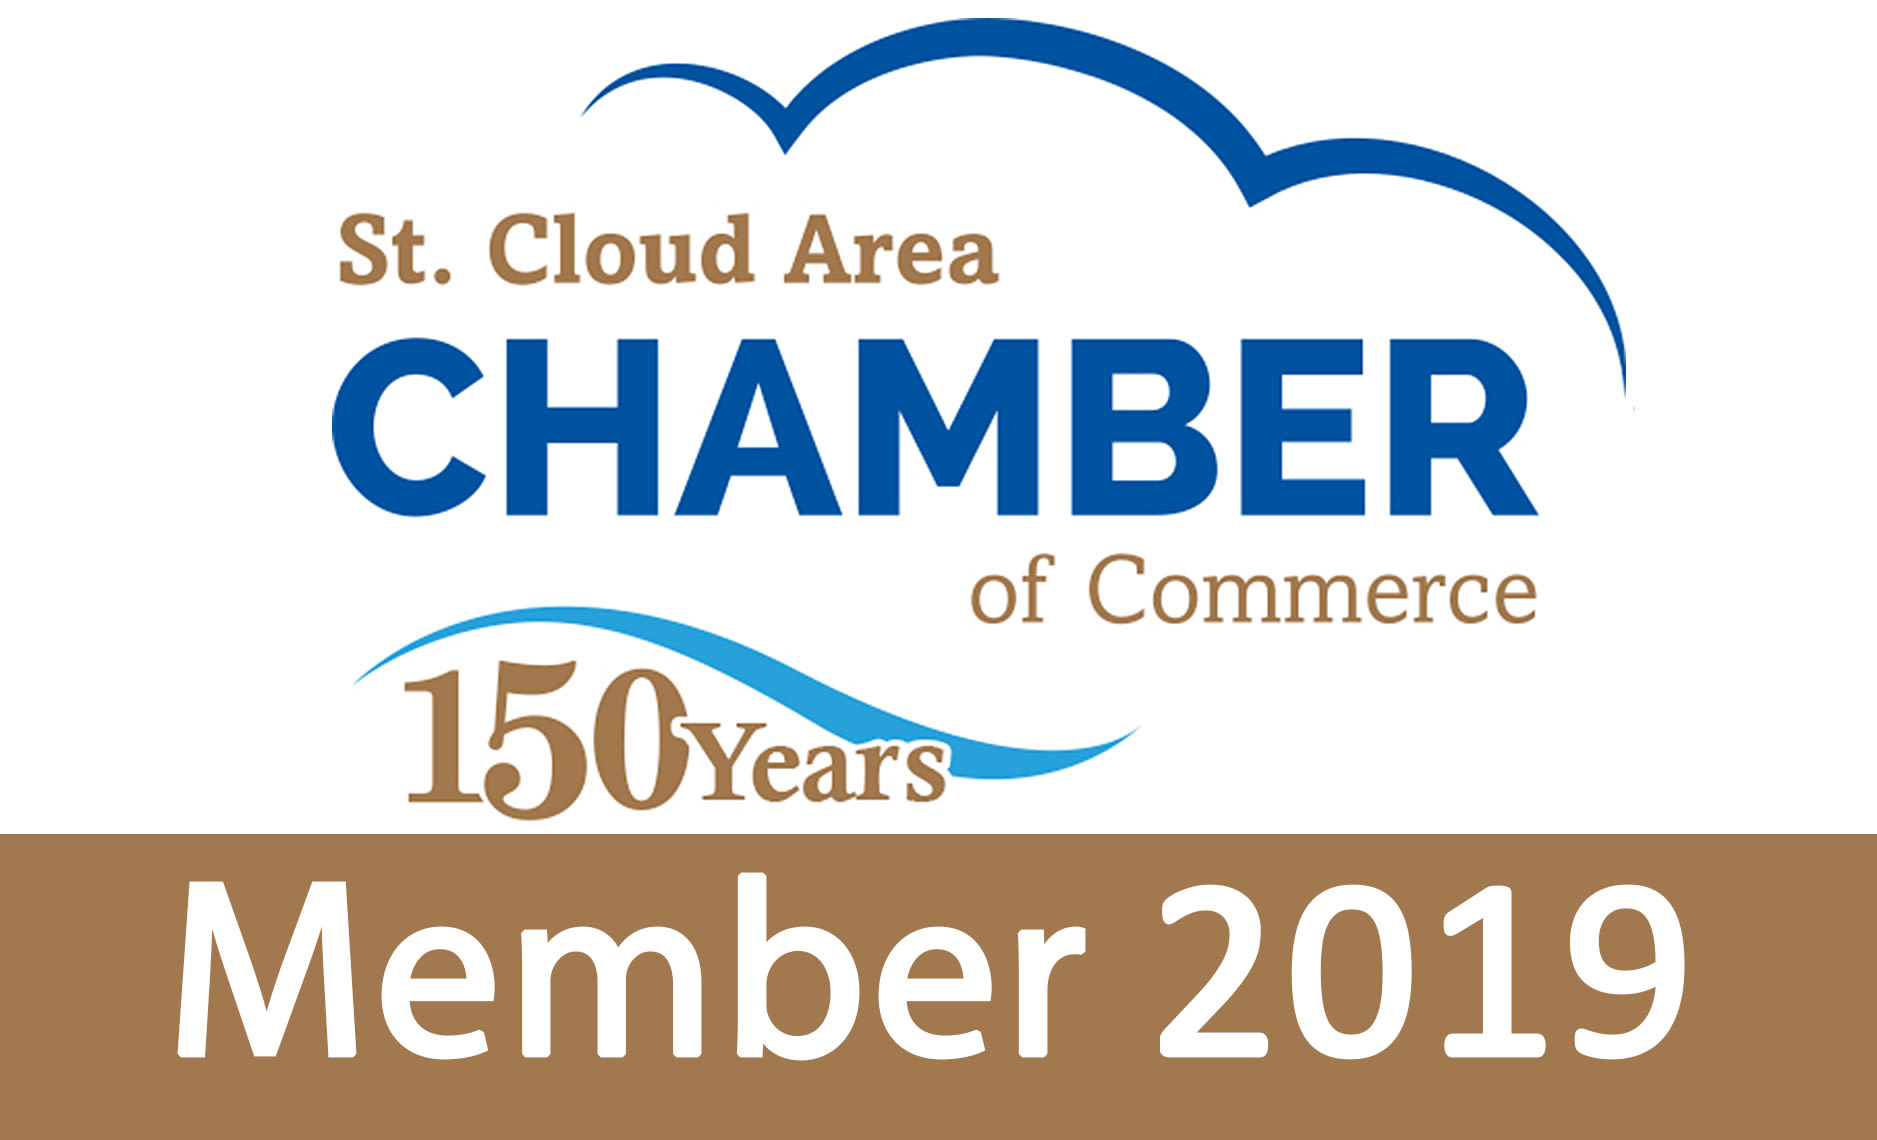 St. Cloud Area Chamber of Commerce Member Logo